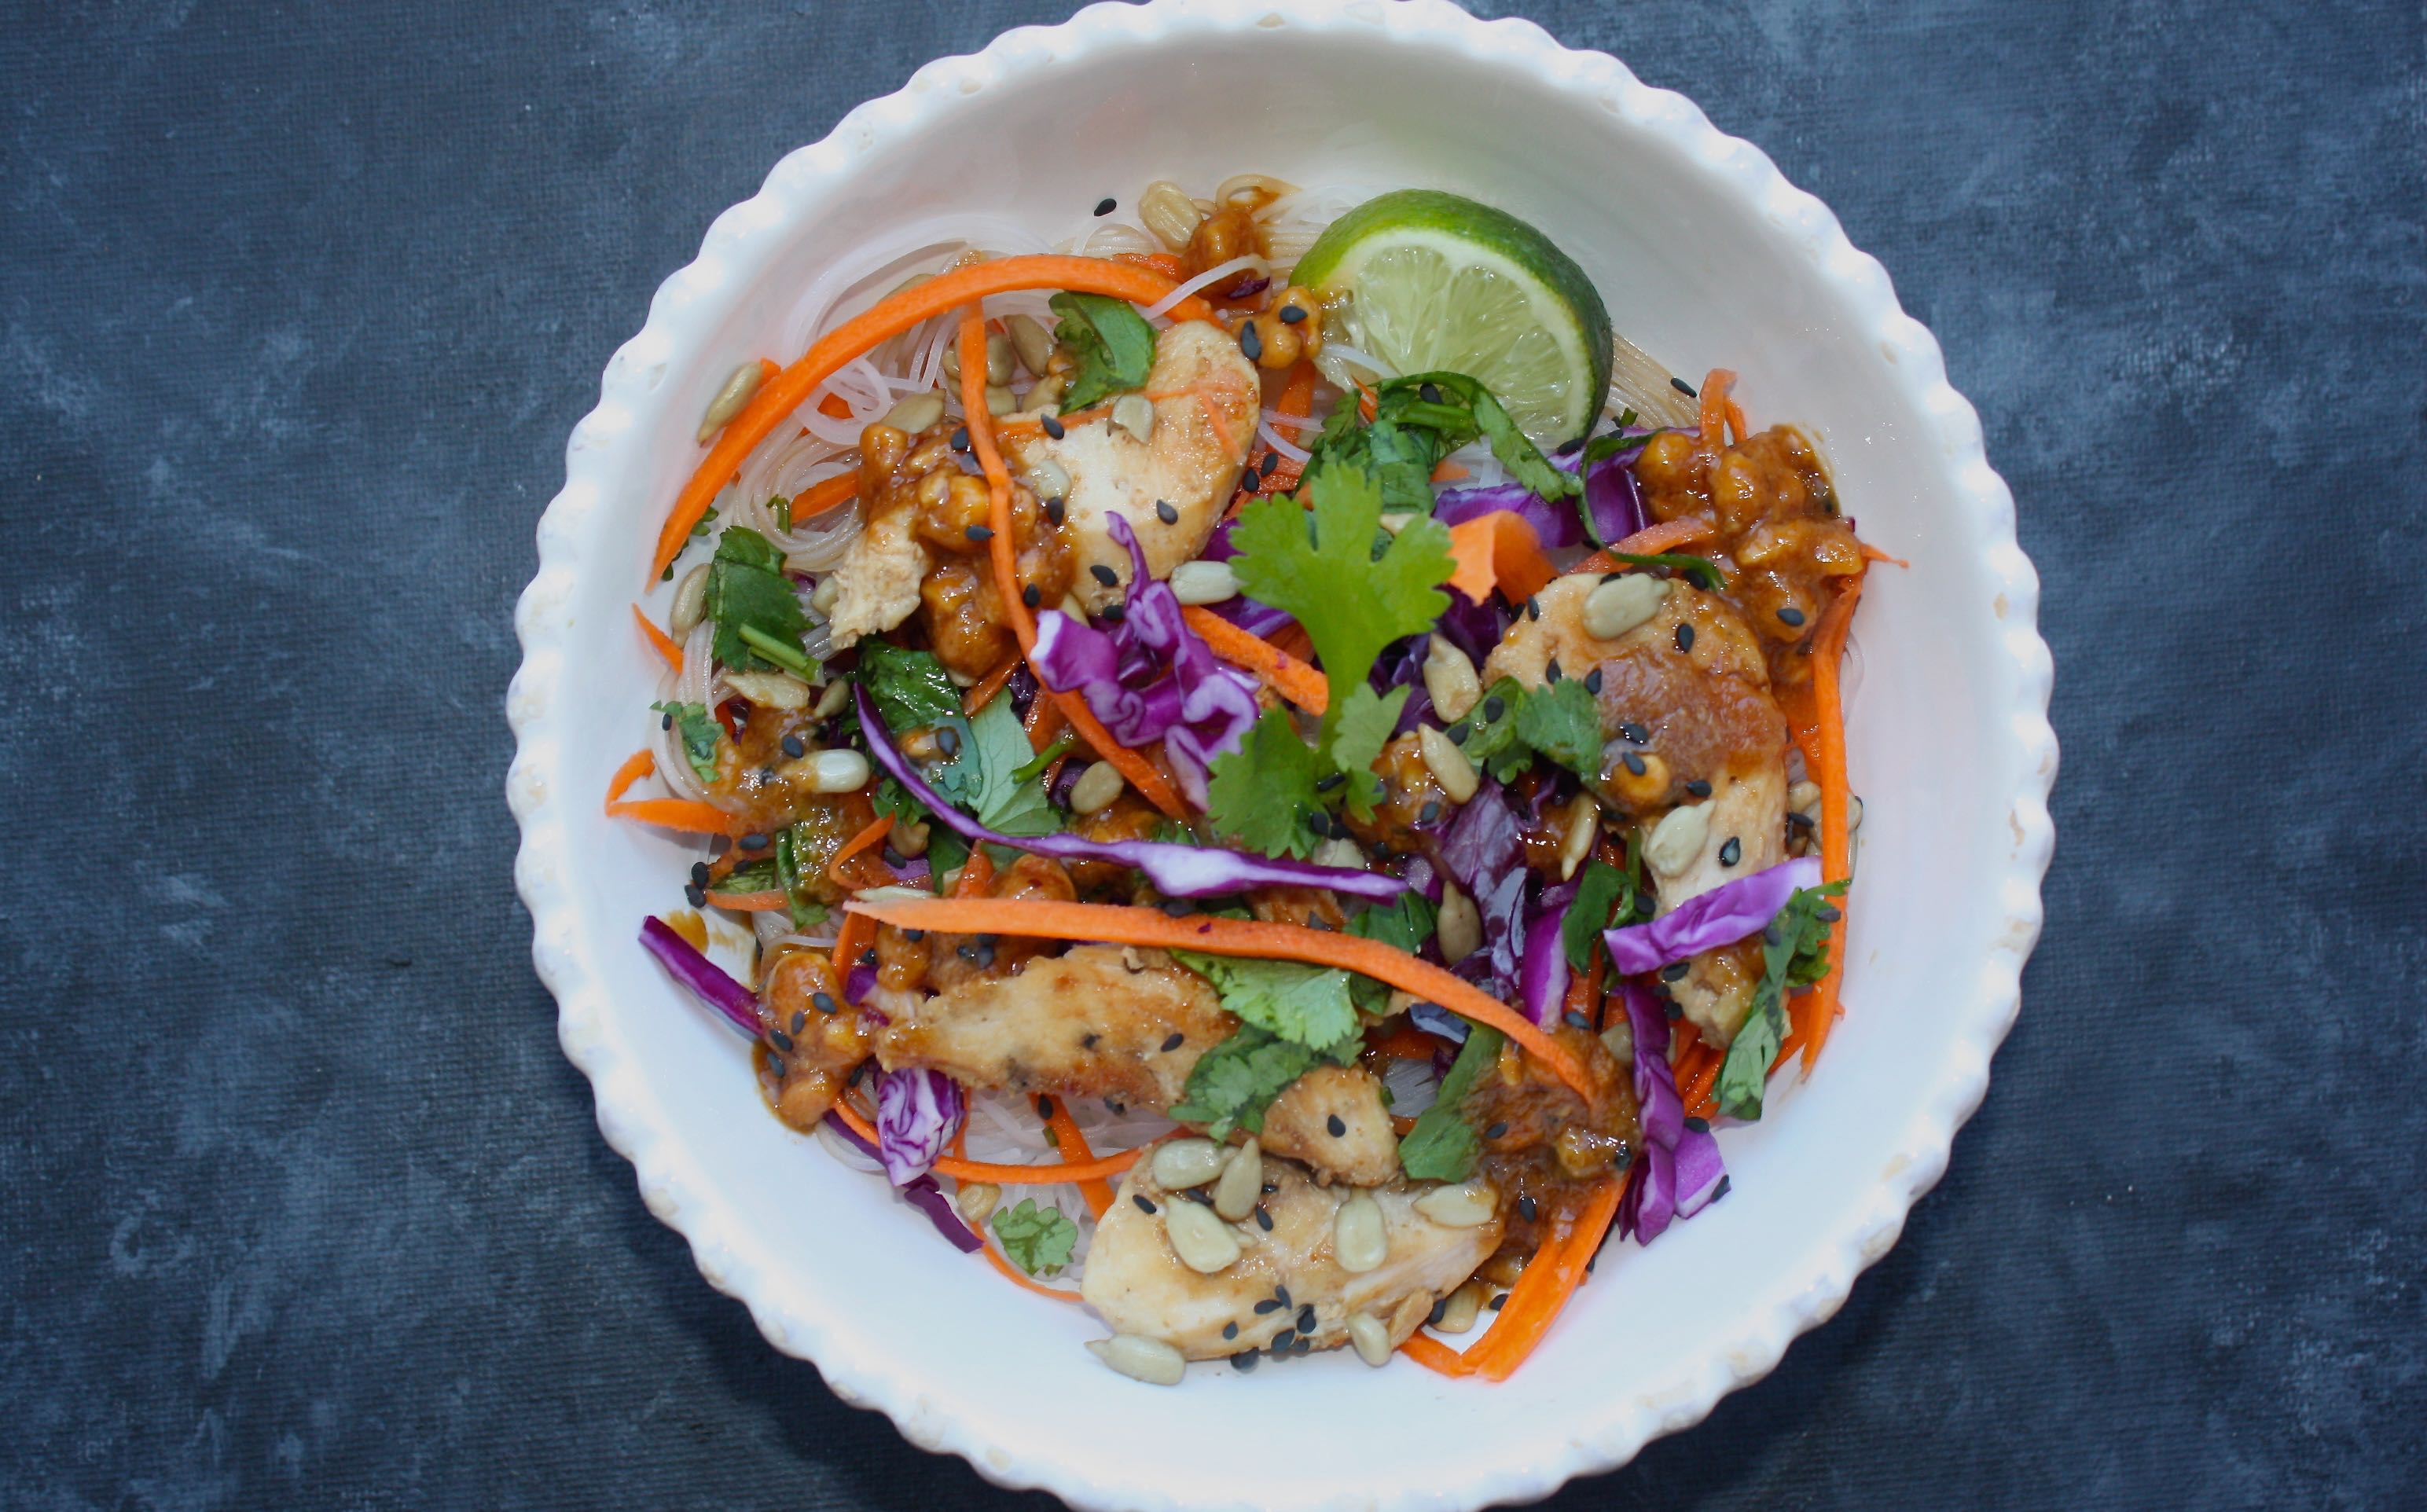 Chicken Rice Bowl With Thai Peanut Sauce For A Digestive Peace Of Mind Kate Scarlata Rdn